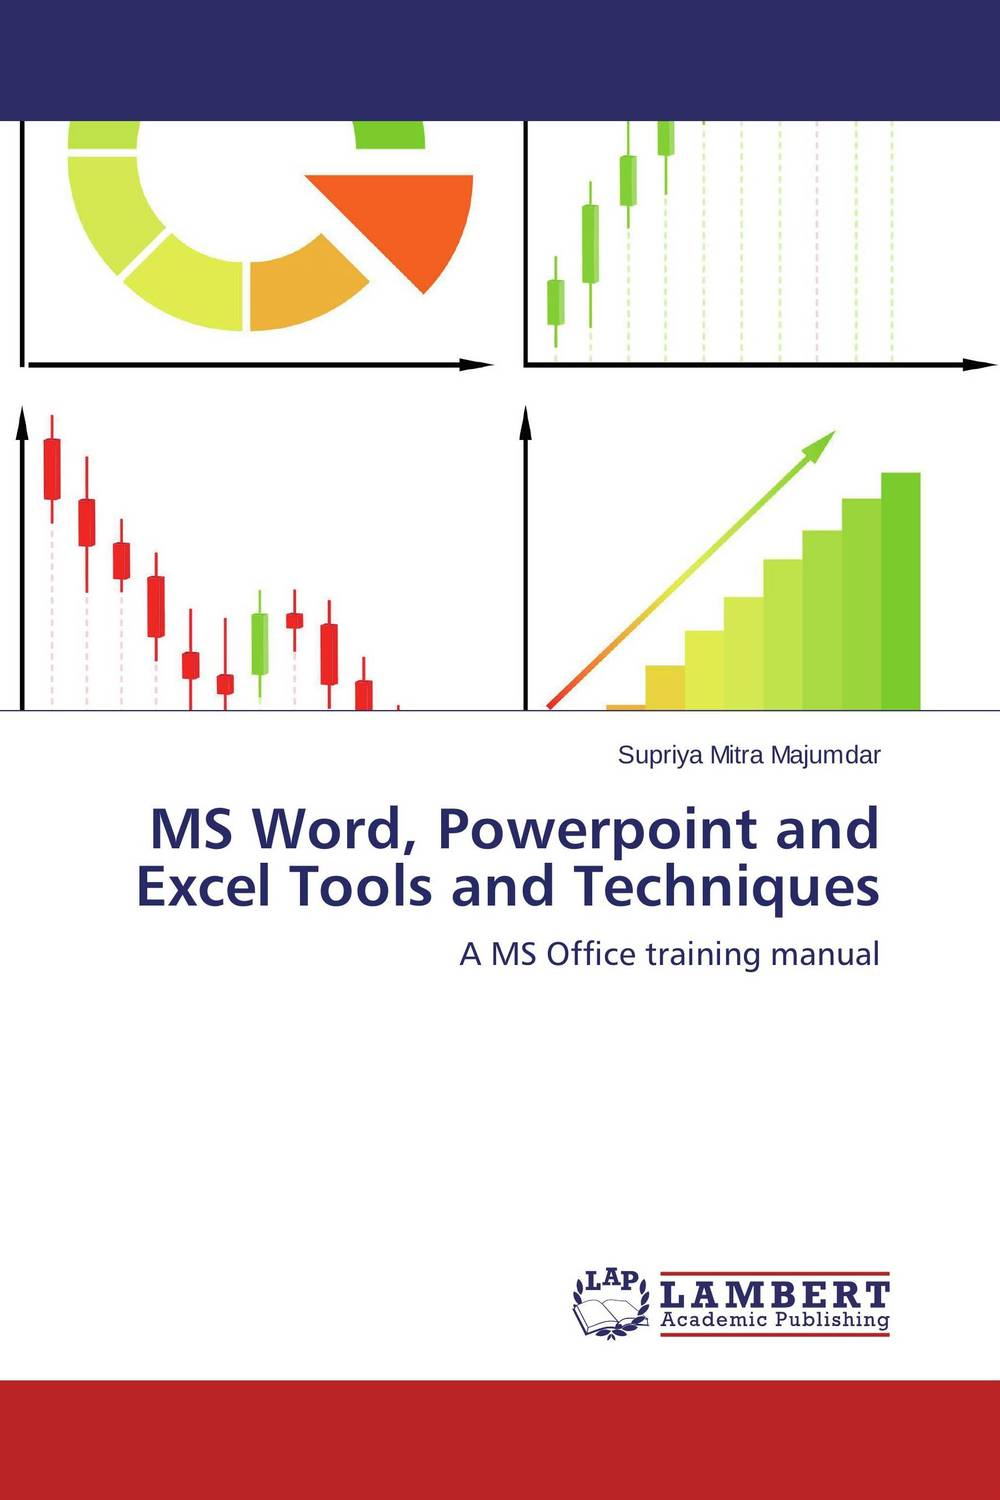 MS Word, Powerpoint and Excel Tools and Techniques netcat power tools